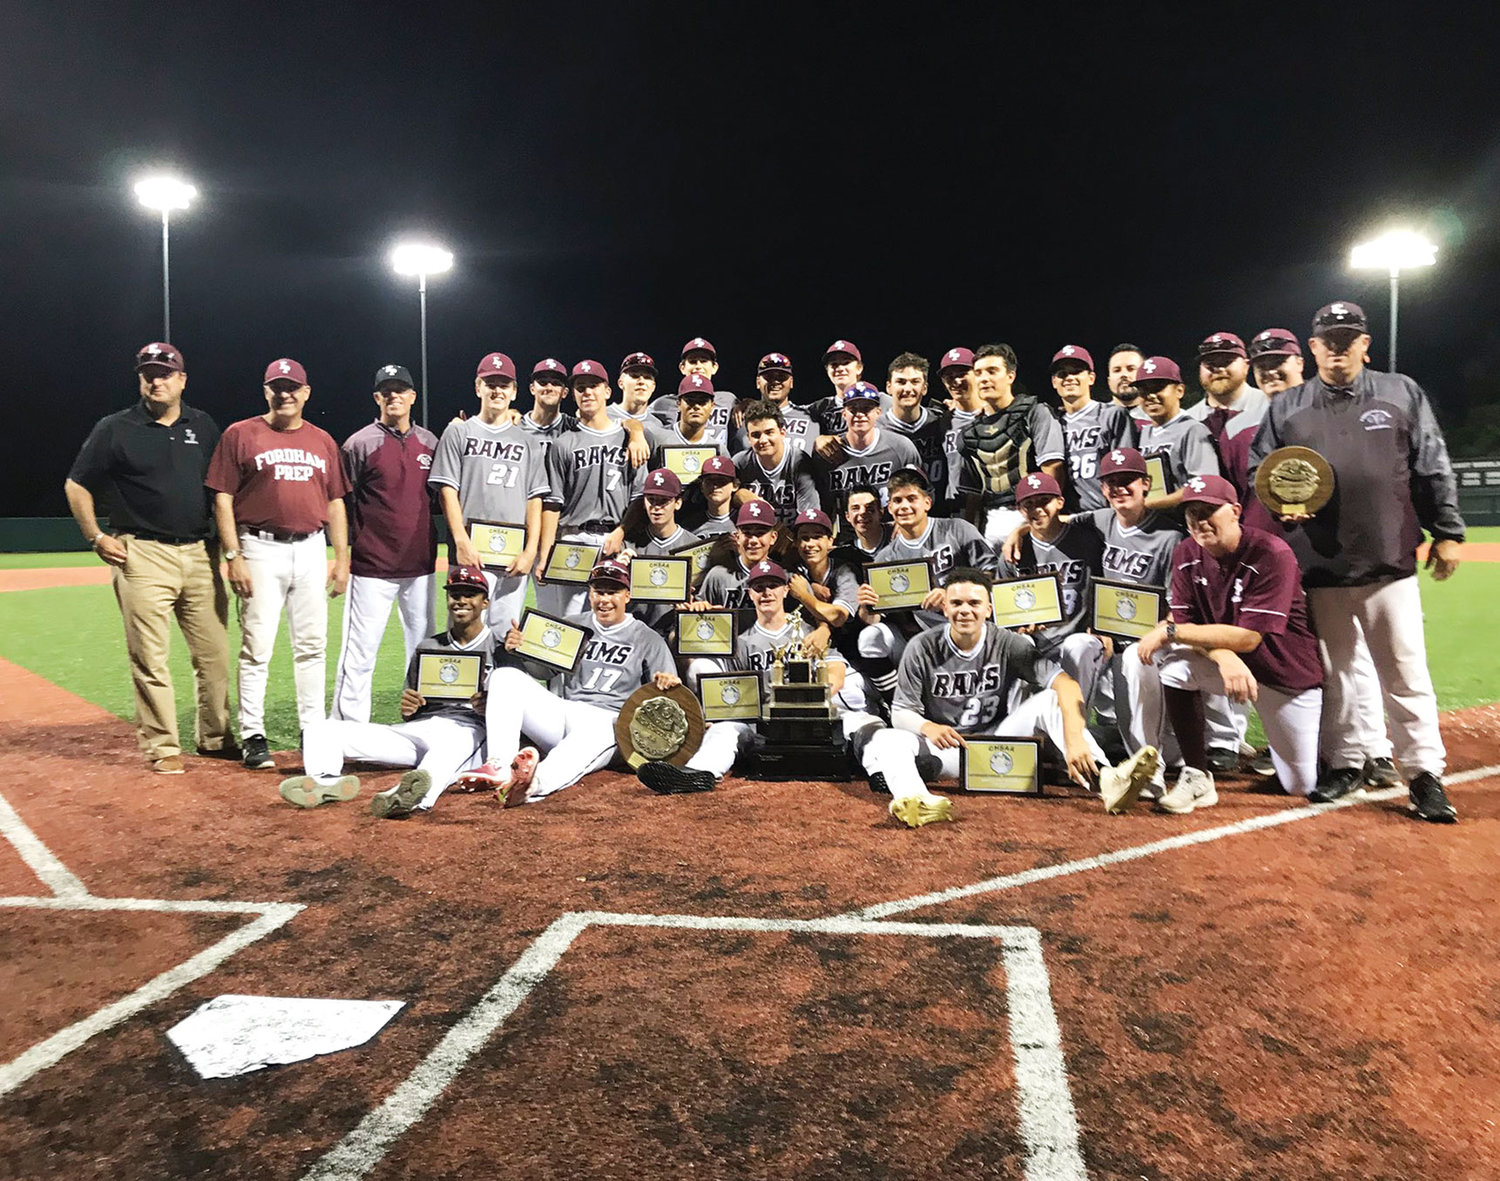 Fordham Prep captured its first CHSAA city baseball title since 2009 by defeating Archbishop Stepinac 4-0 at St. John's University in Queens June 6.